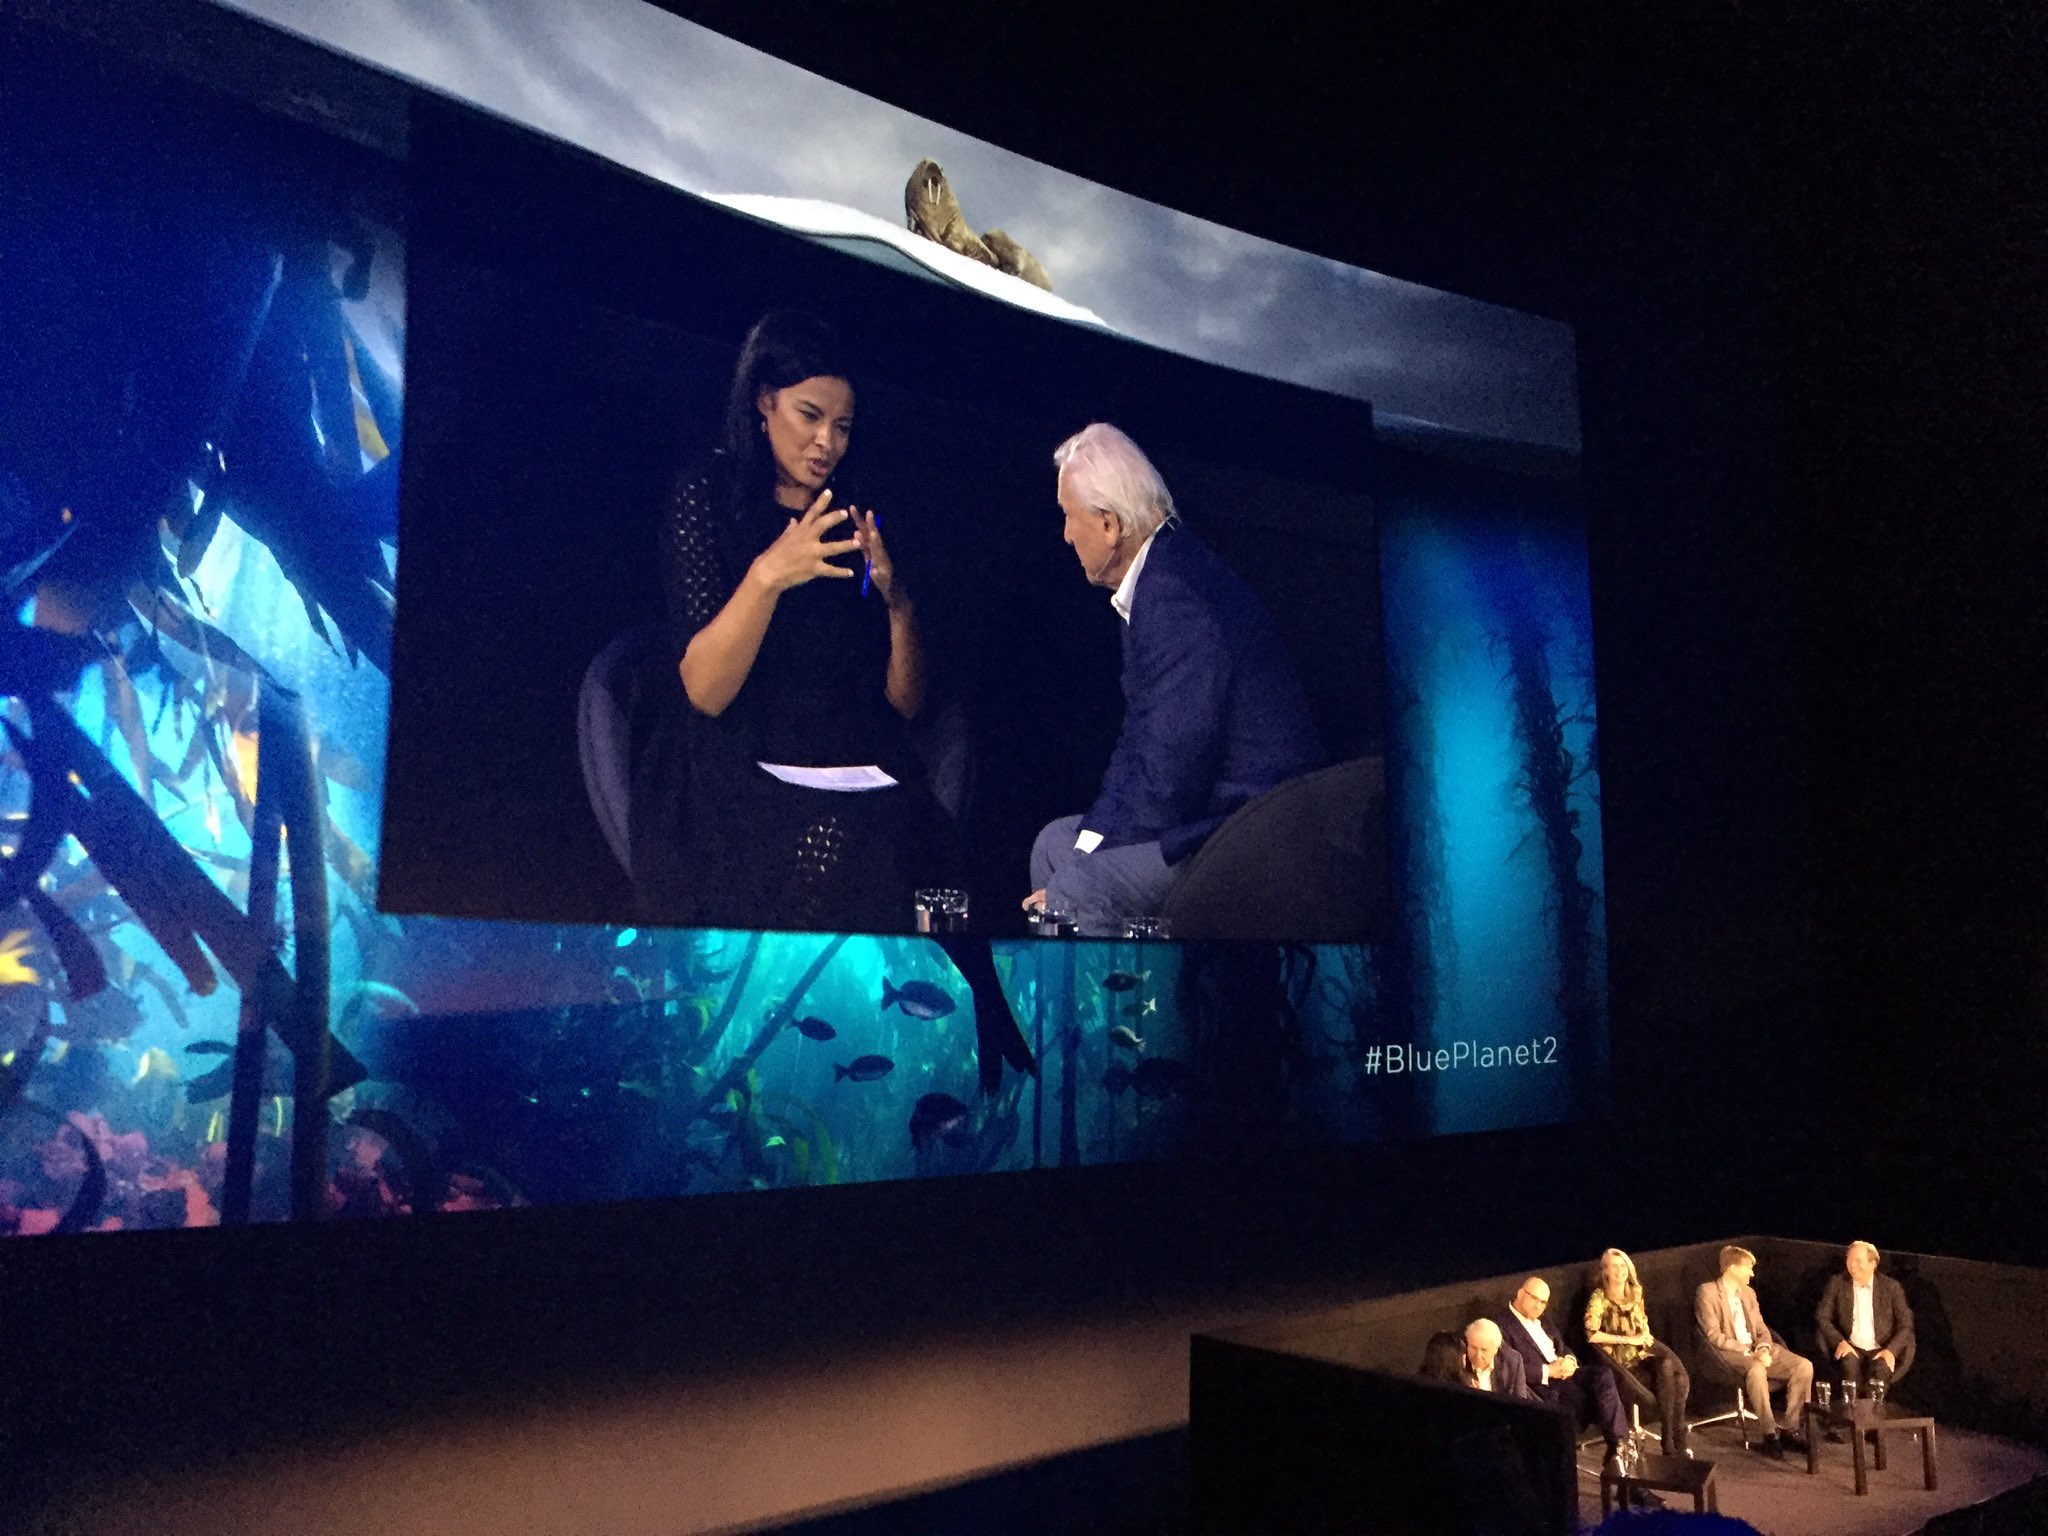 Liz Bonnin interviewing Sir David Attenborough After the World Premiere of Blue Planet 2.